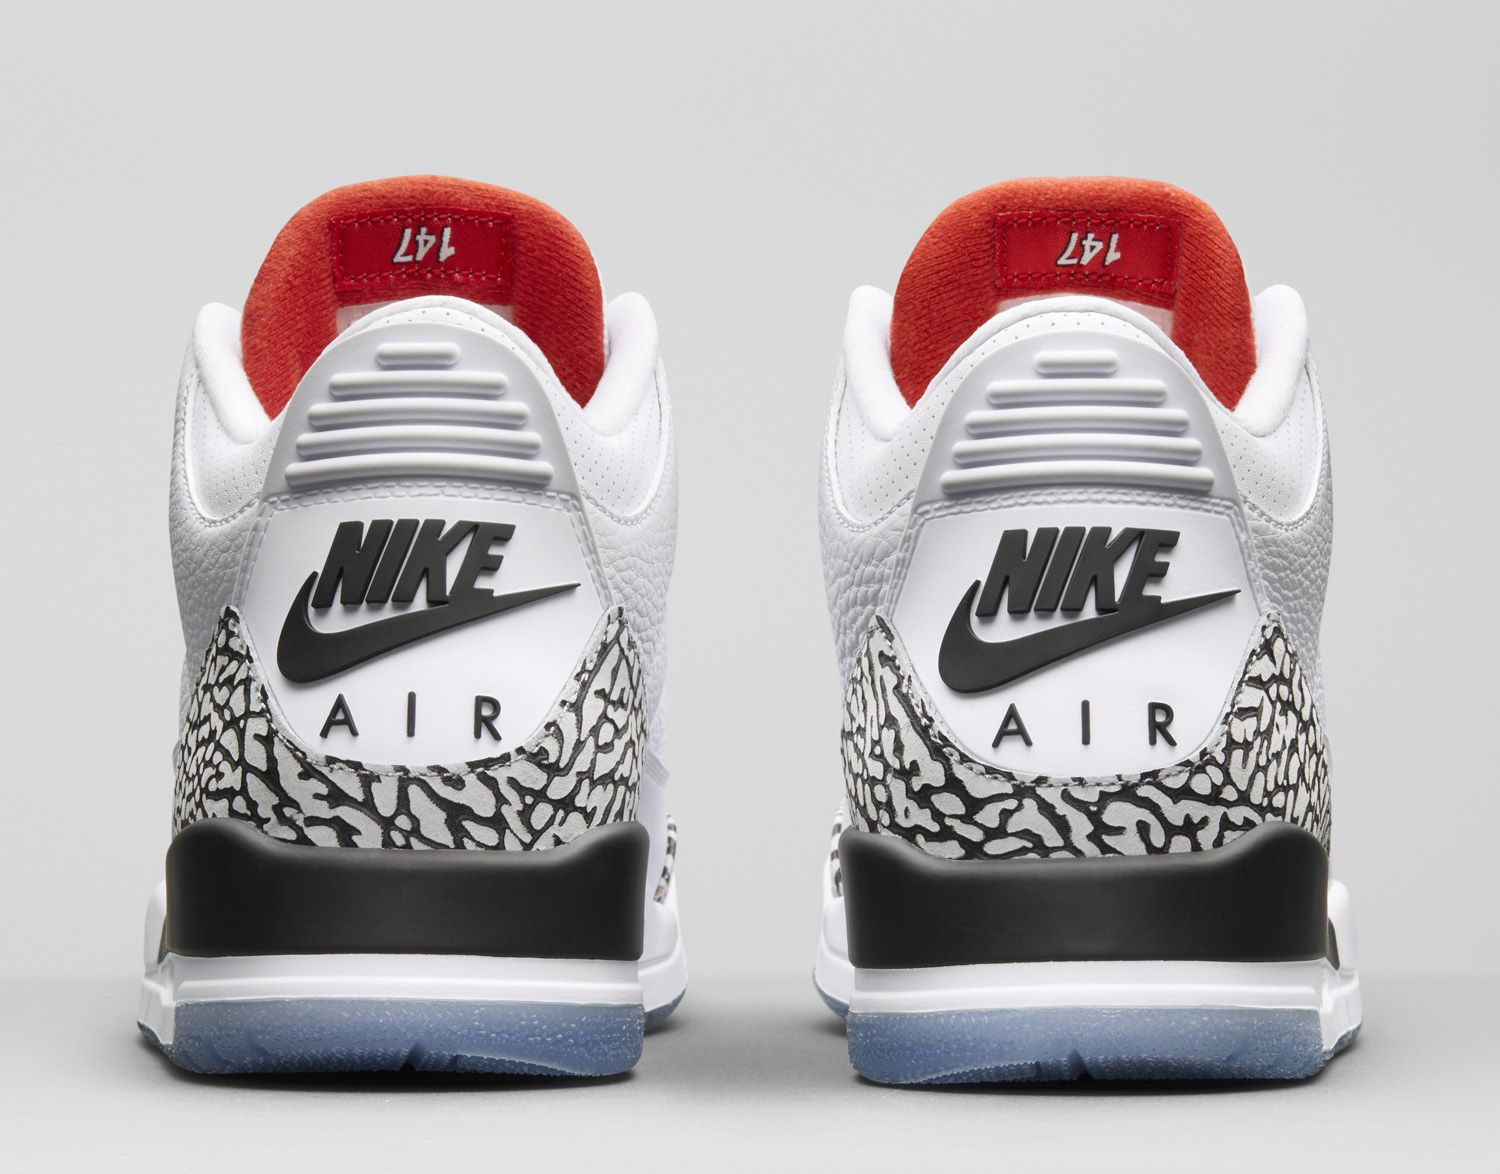 dccebdd08f53ca The Air Jordan 3  White Cement  NRG Celebrates MJ s Jump From the Free  Throw Line - WearTesters